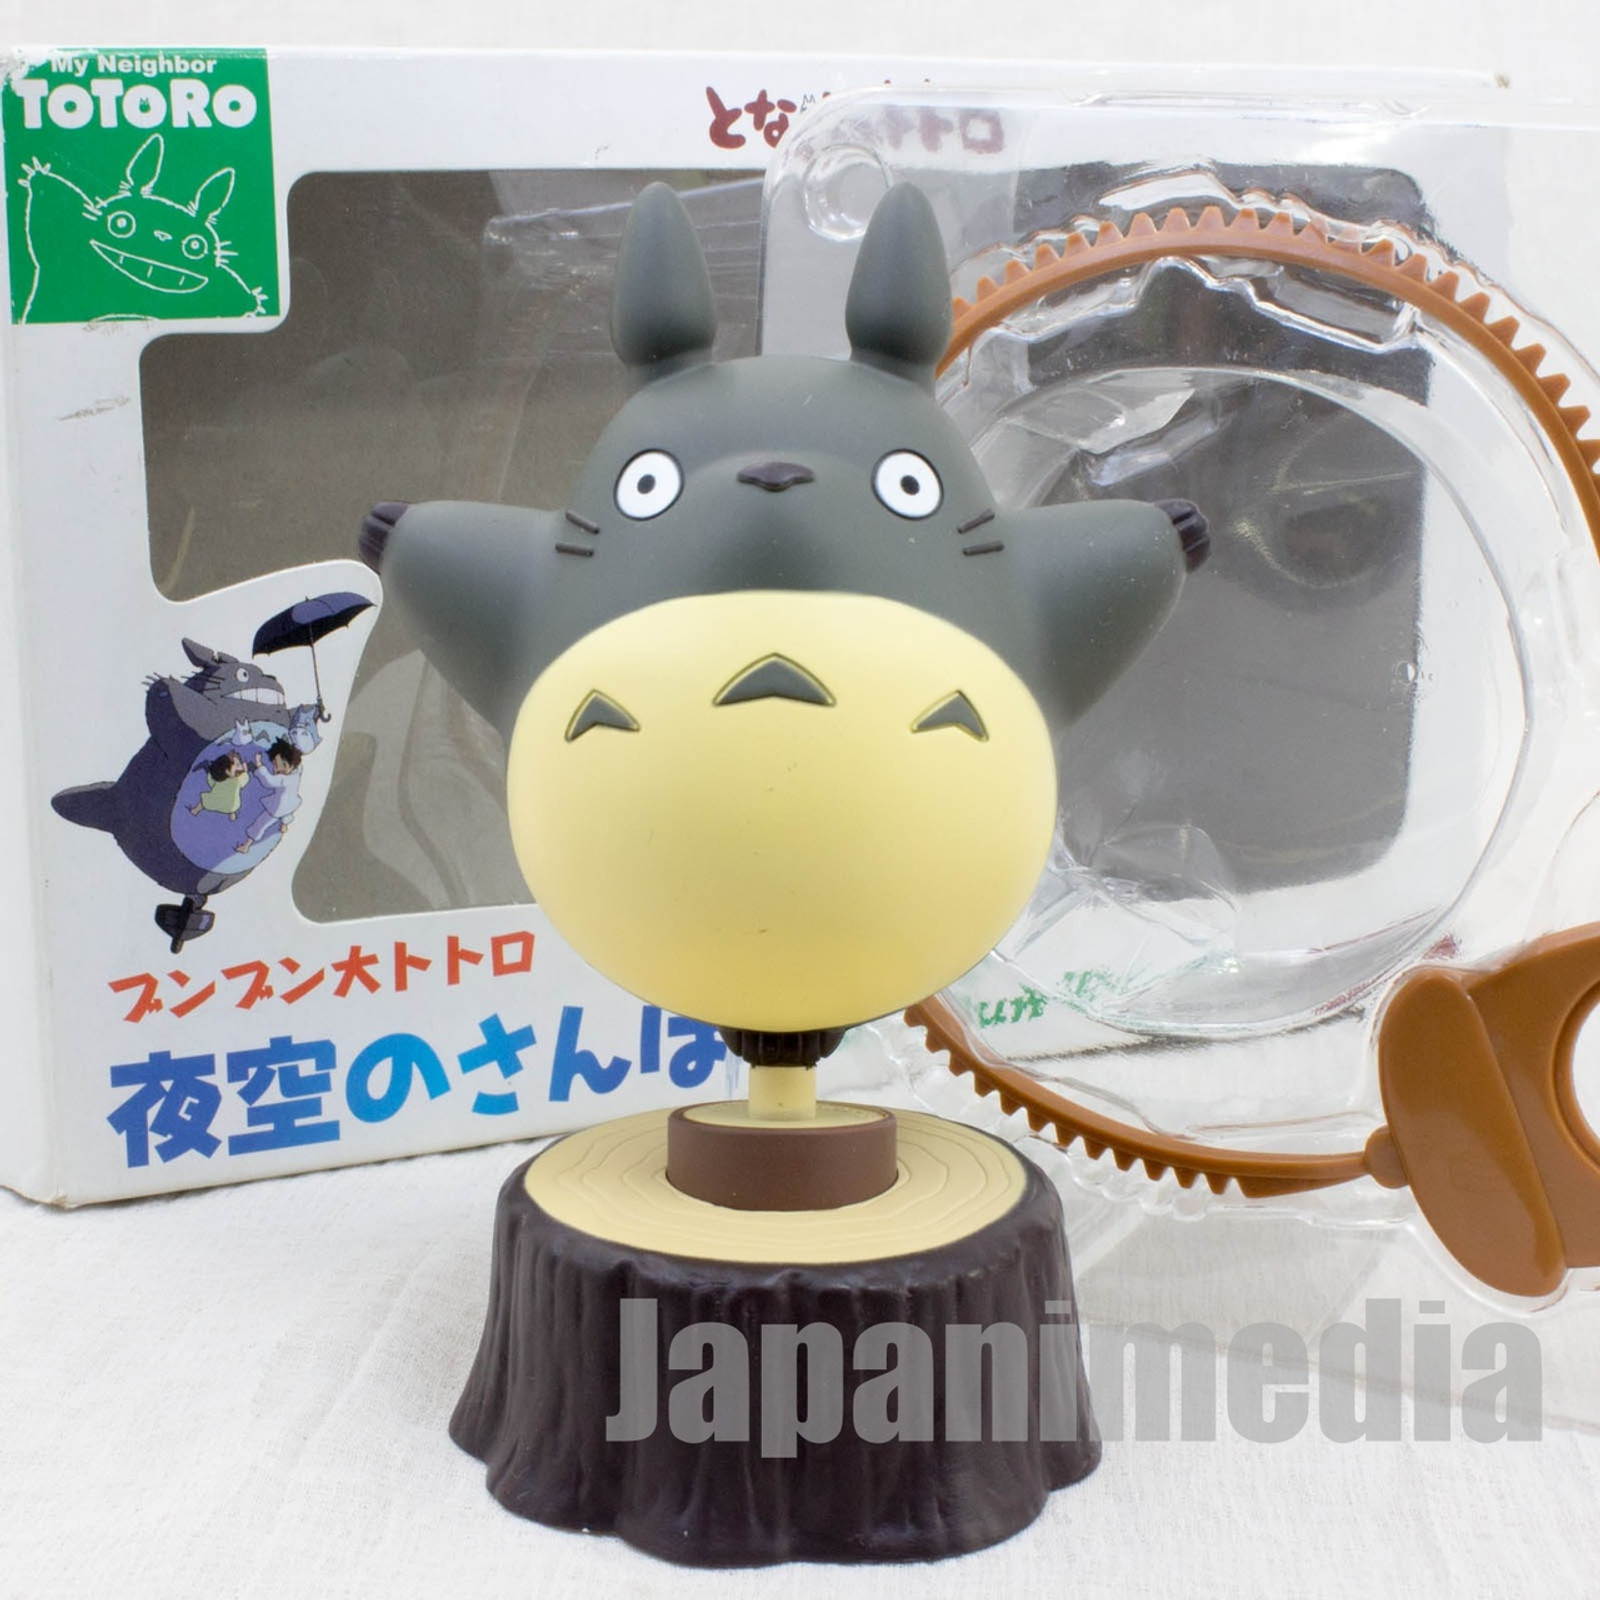 My Neighbor Totoro Bun Bun Totoro Koma Toy Figure Ghibli JAPAN ANIME